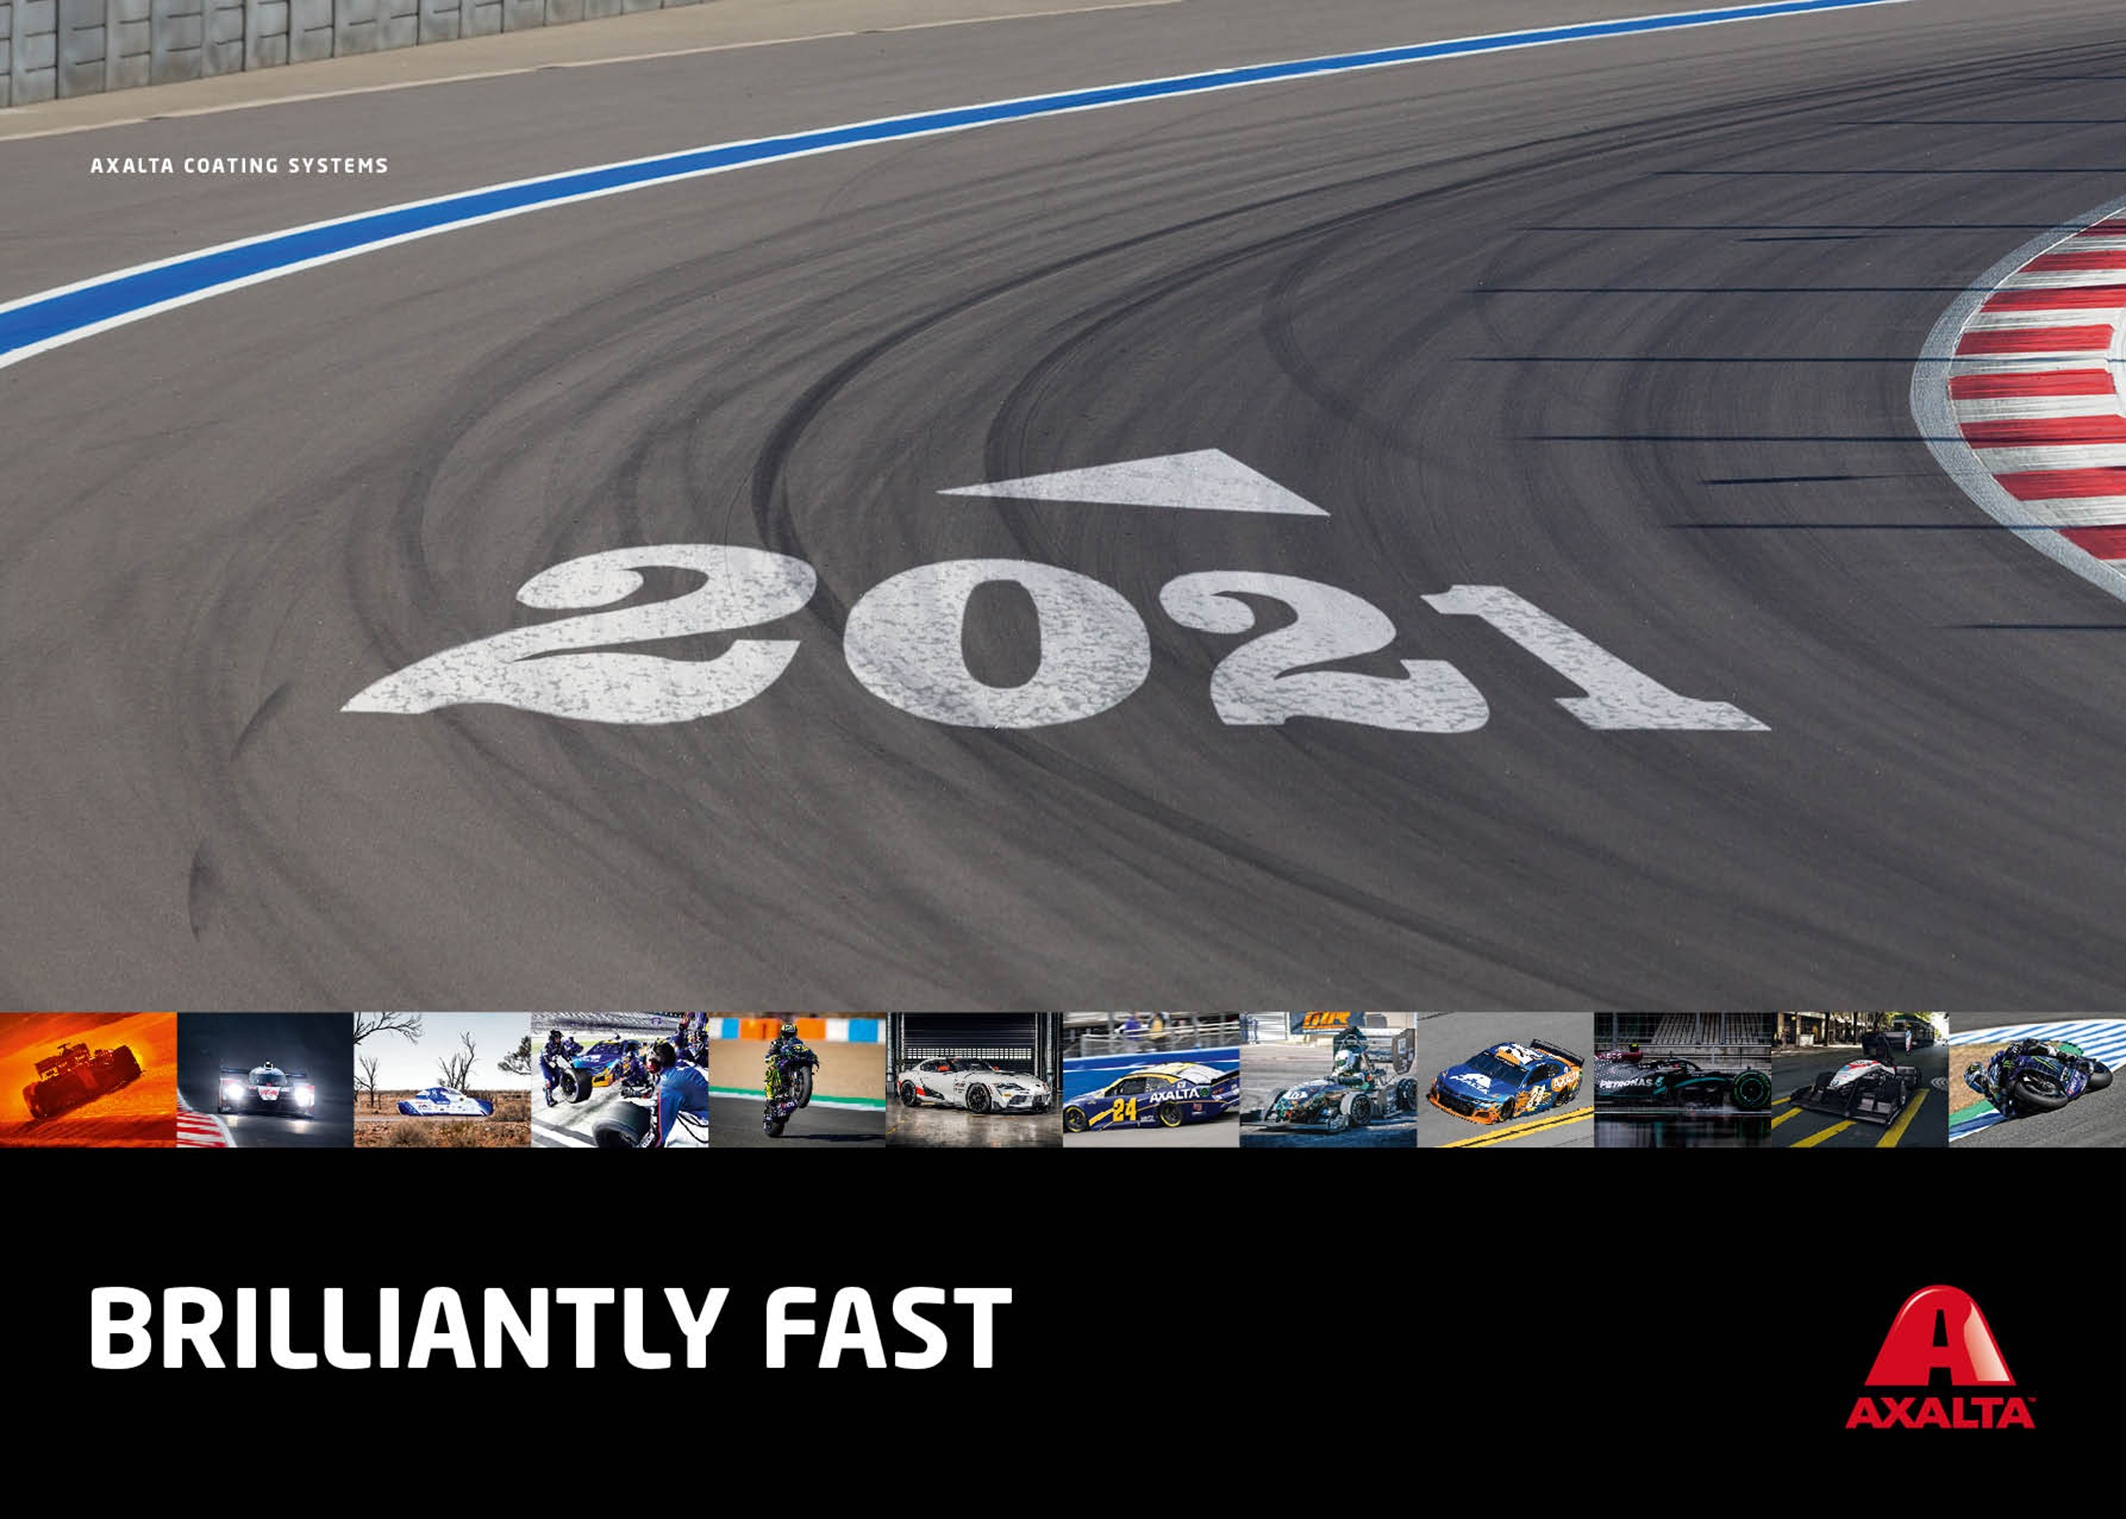 Axalta_Brilliantly_Fast_2021_Calendar front